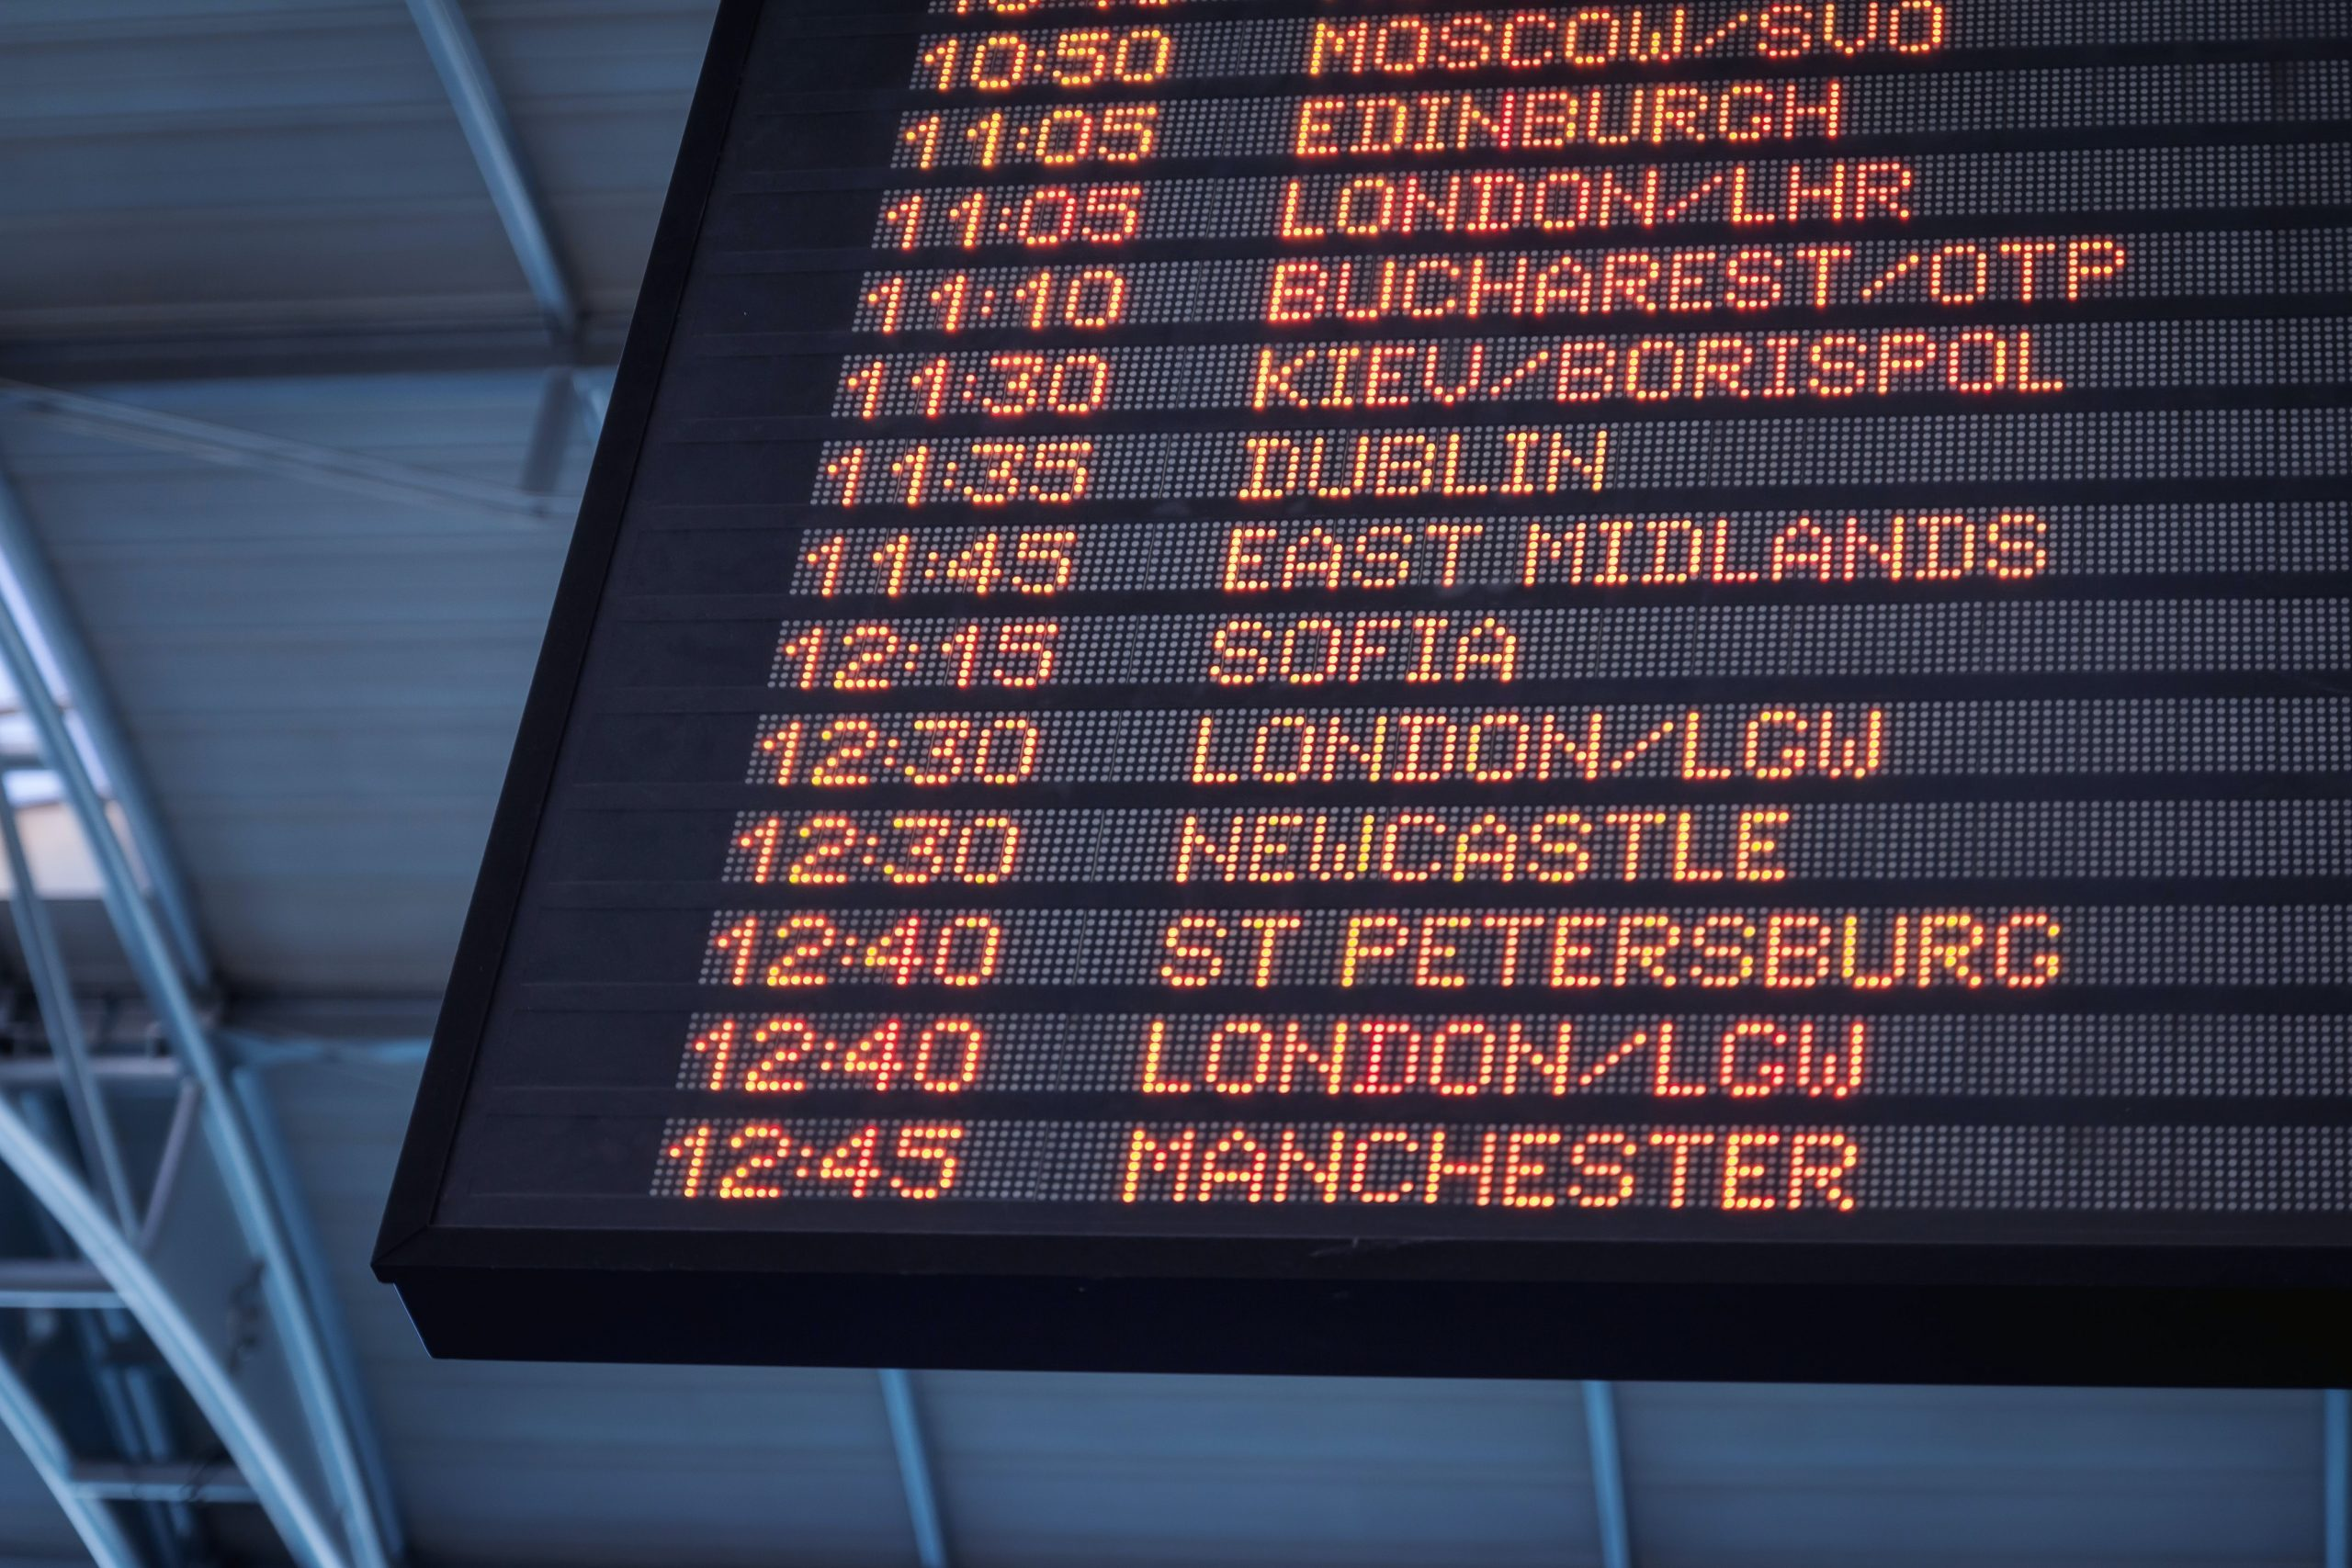 This is a picture of an airport departure board for an article called Competitive Intelligence questions to NATS Strategy Analysis and Development manager by Octopus Competitive Intelligence Competitor Analysis and Corporate Investigations